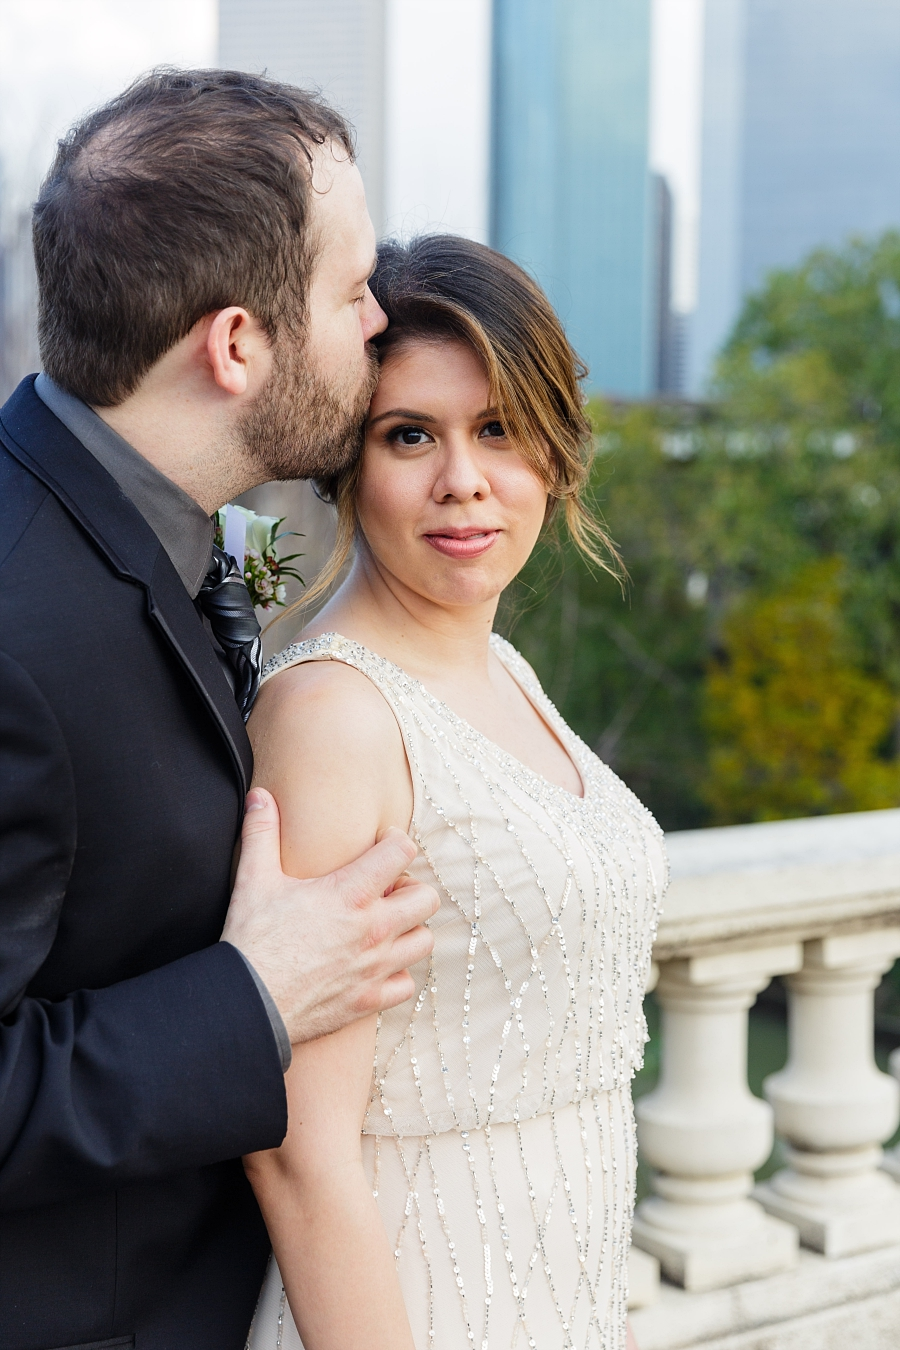 Stacy-Anderson-Photography-Houston-Courthouse-Vic-Anthony-Wedding-Photographer_0010.jpg